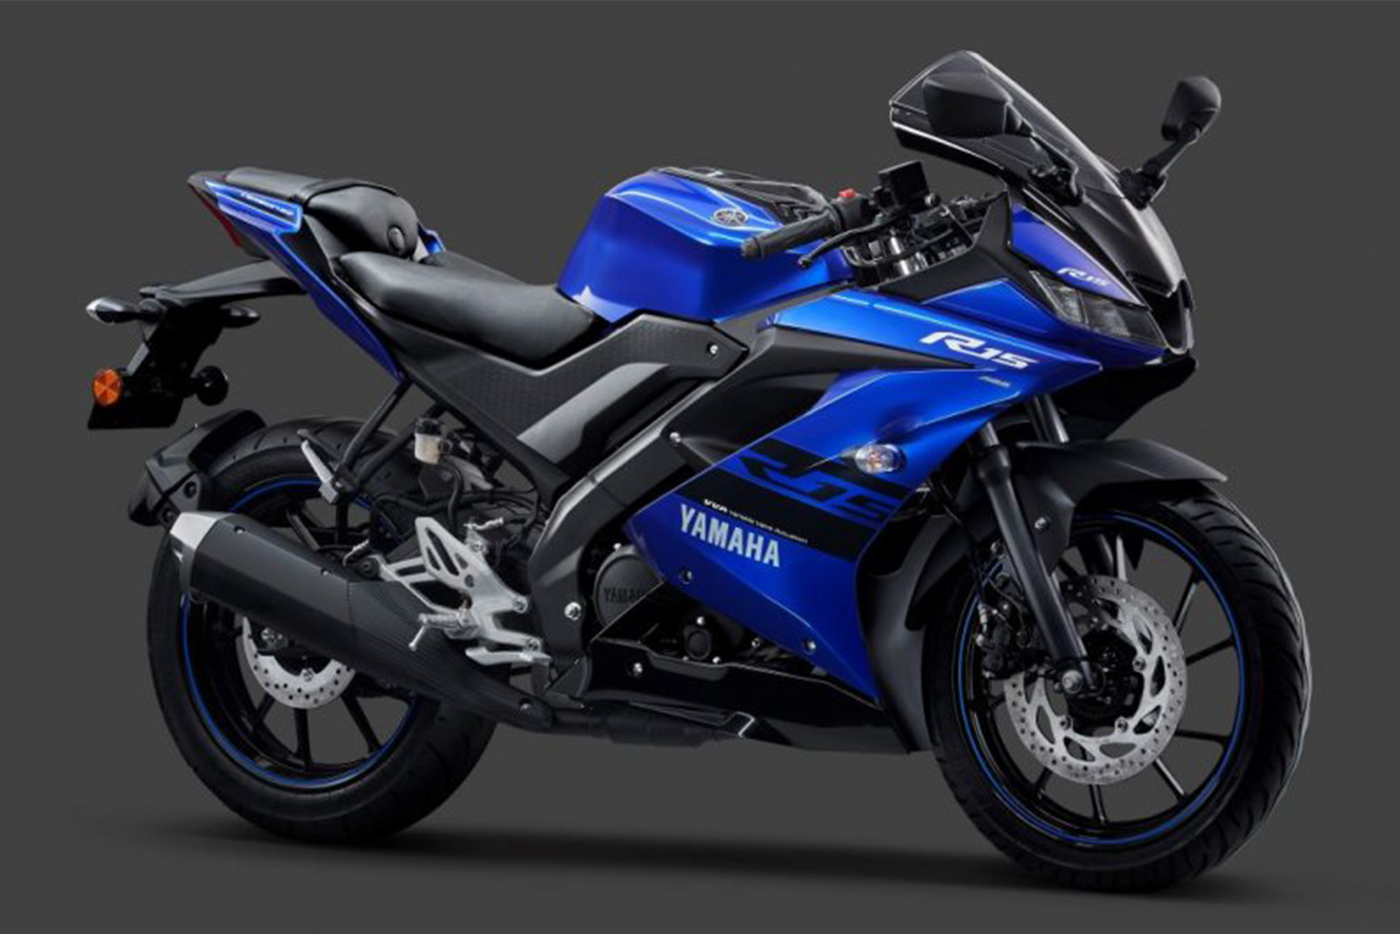 yamaha-yzf-r15-v3-0-abs-racing-blue-a044.jpg